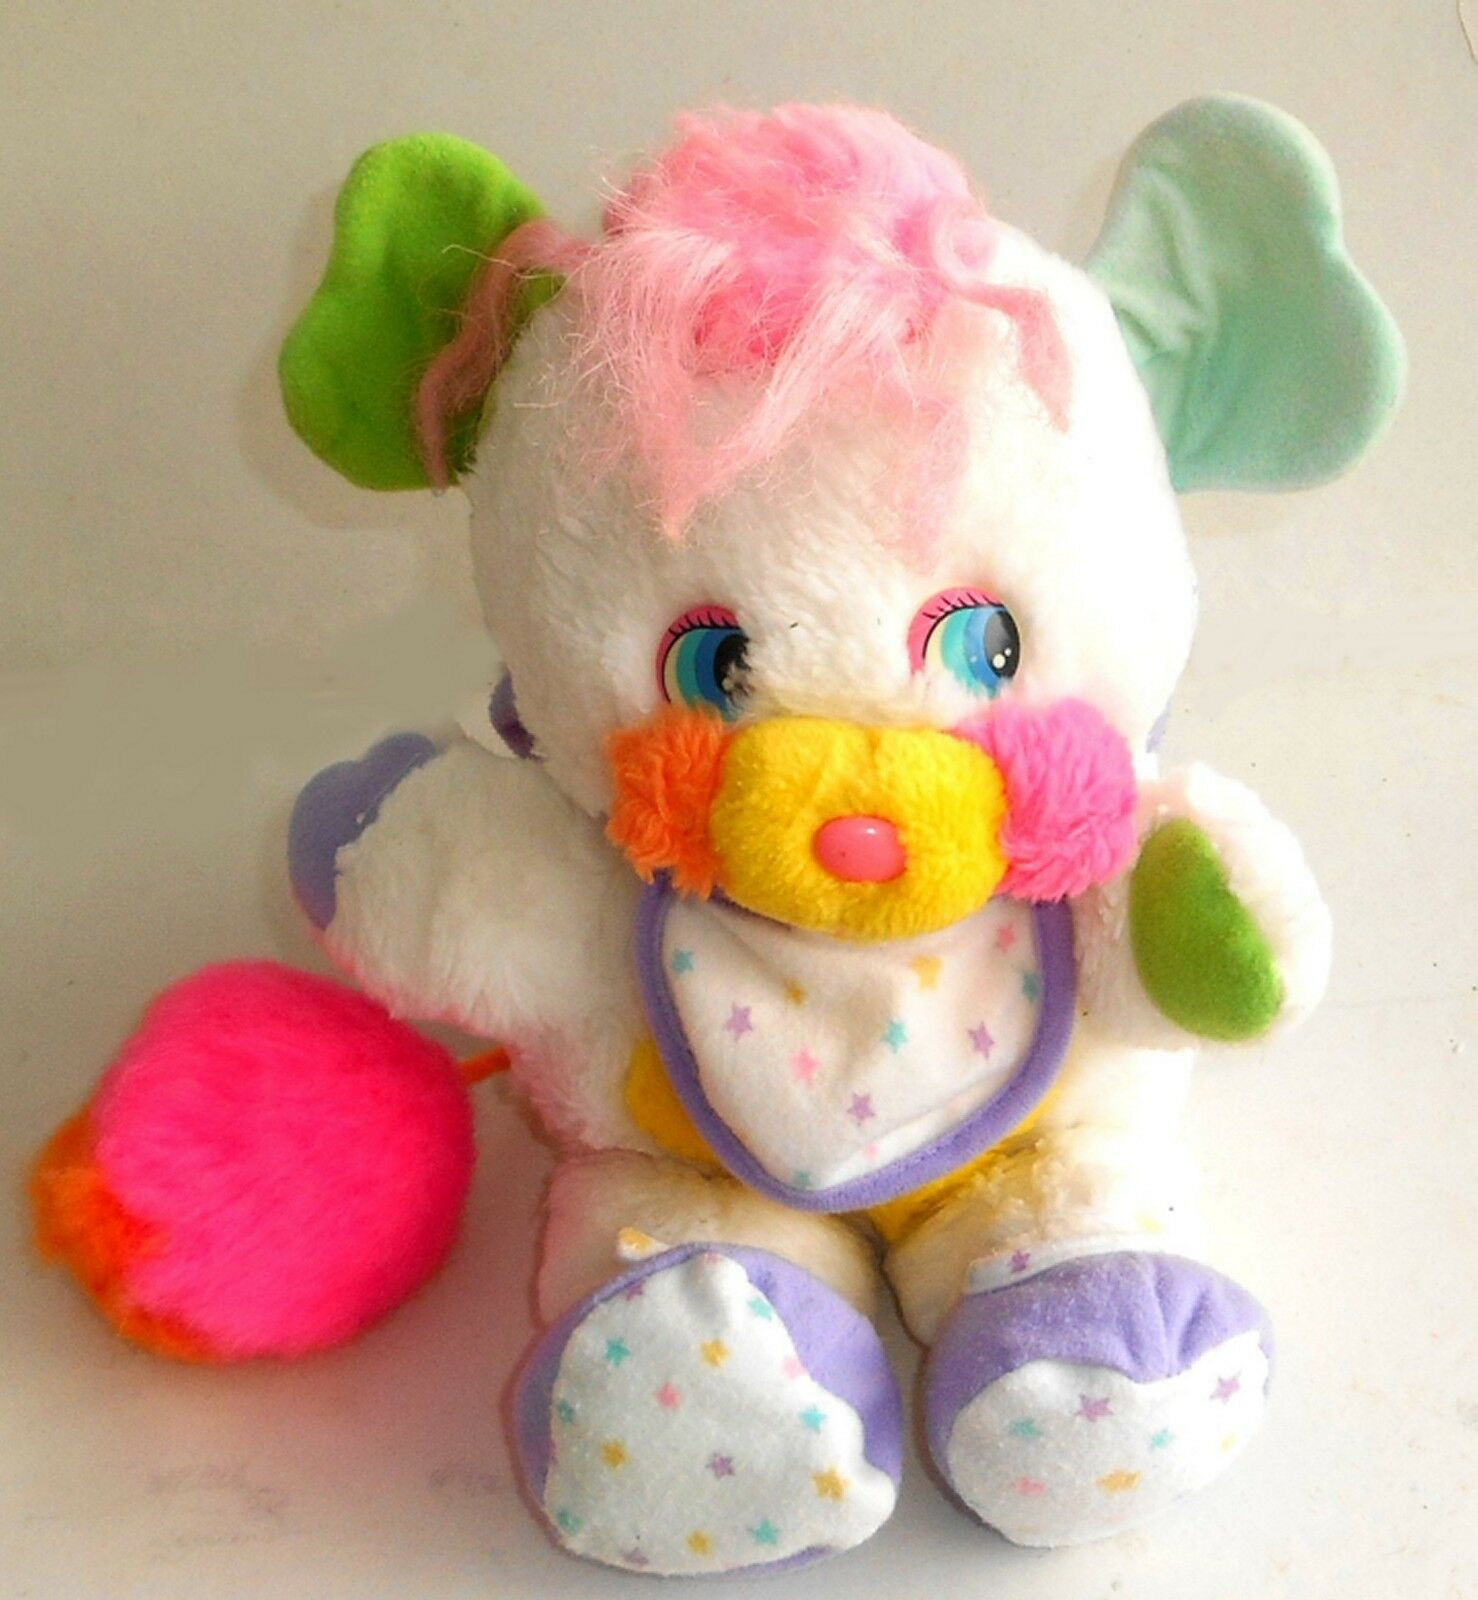 Vintage 1980's  Popples Popples Popples   Baby BIBSY Popple  11  Plush Toy - (SP27) c73b87